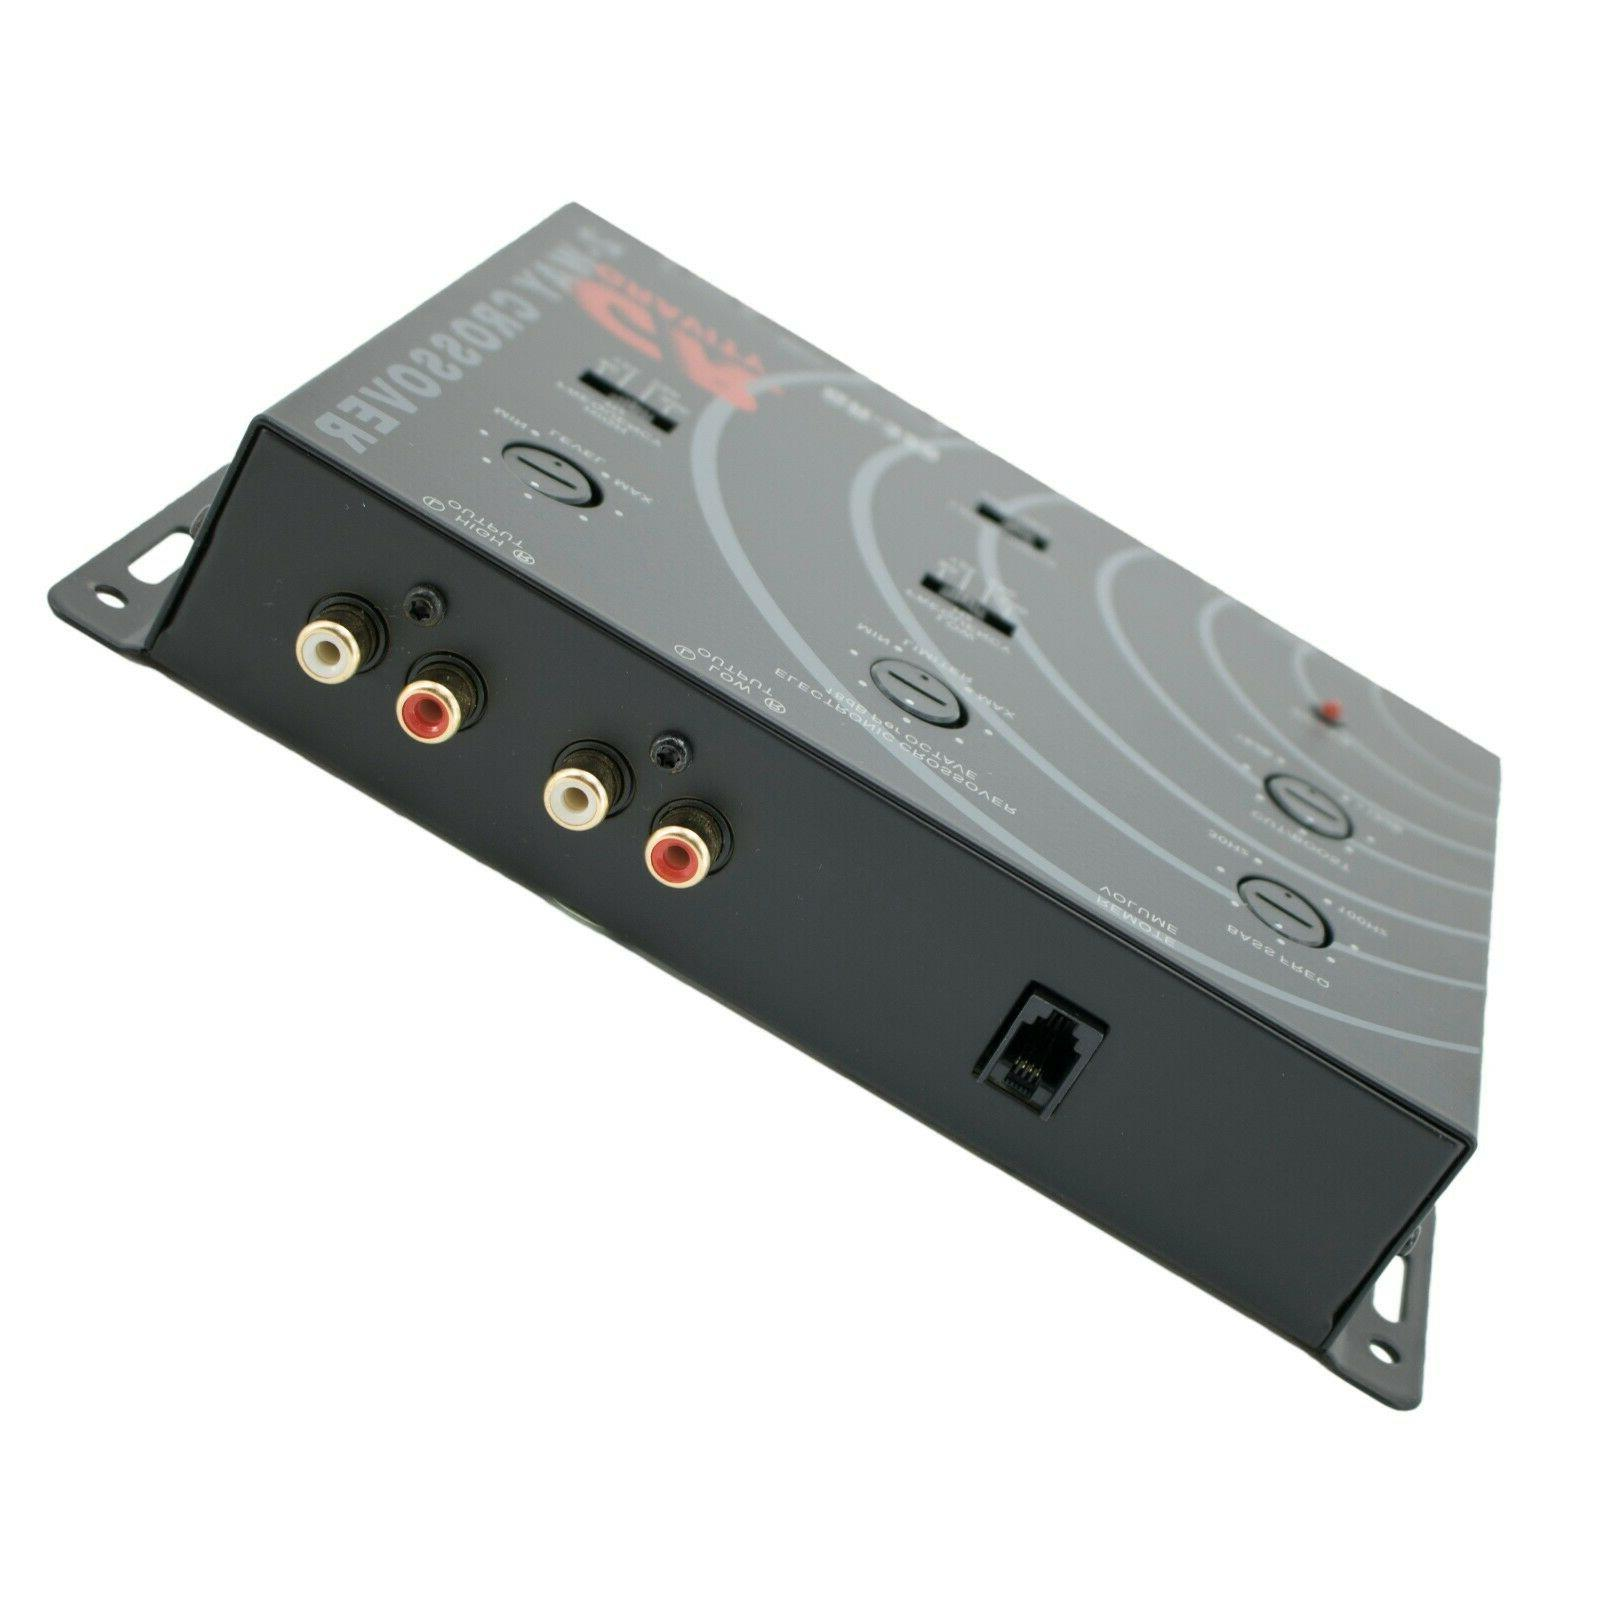 SoundXtreme AX2200 Crossover